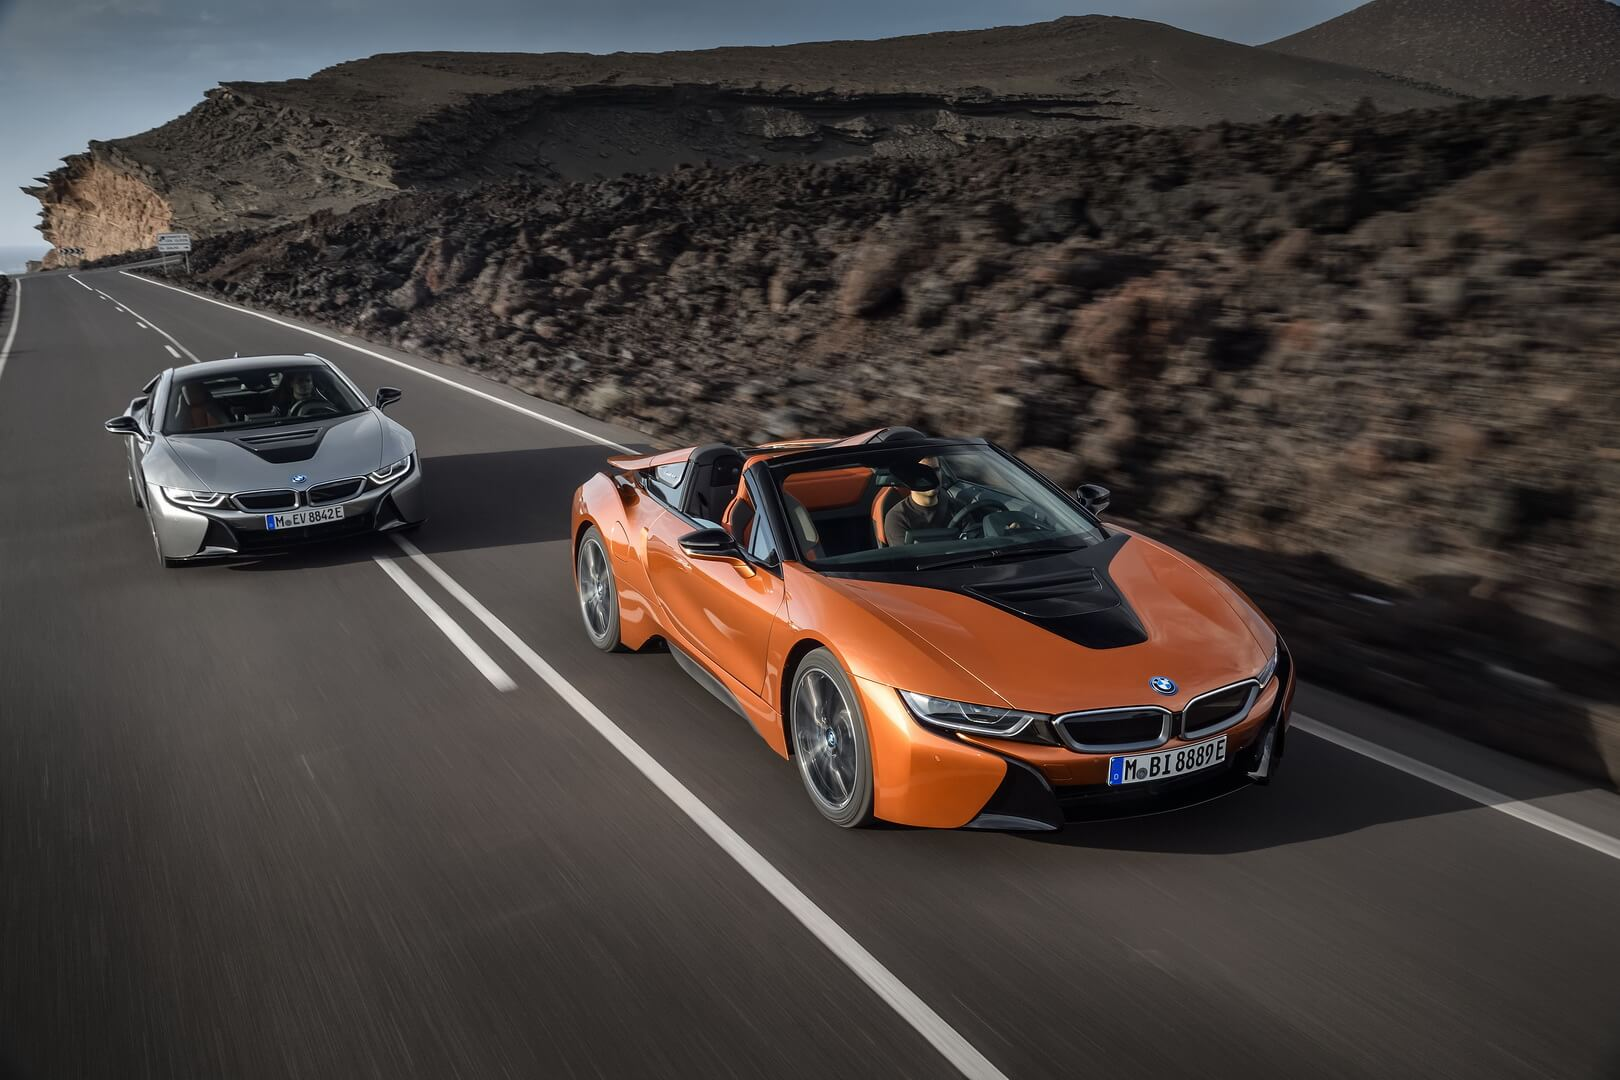 BMW i8 Coupe & BMW i8 Roadster